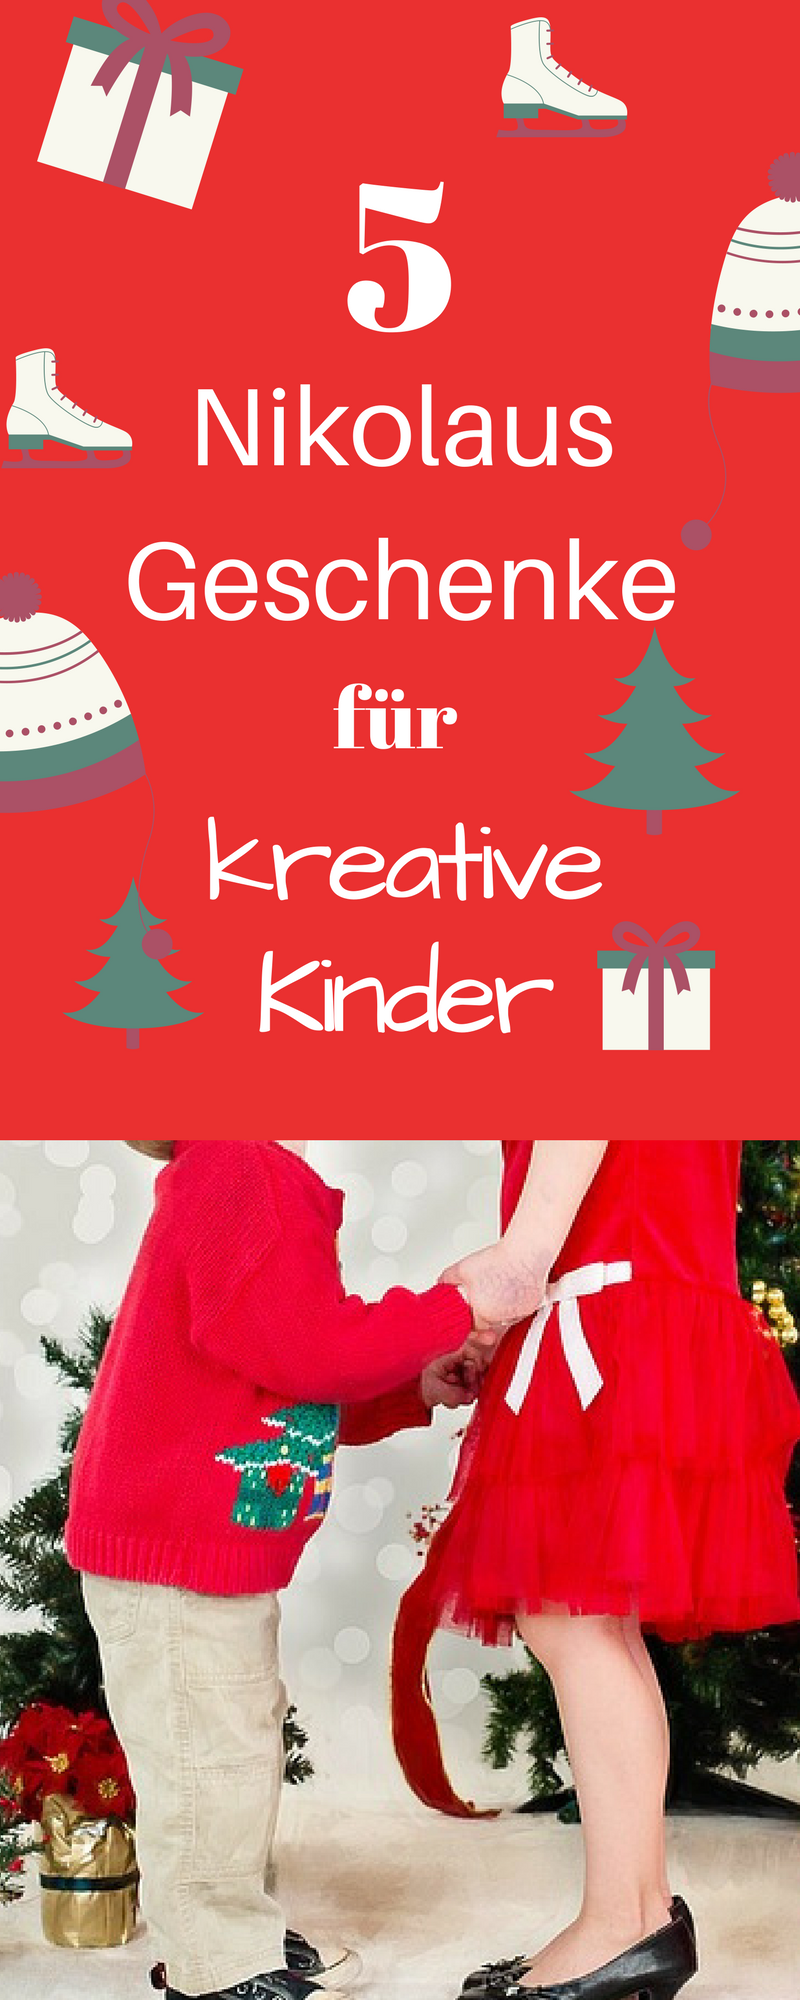 nikolaus geschenke f r kreative kinder zwischen 3 5 jahren nikolaus spr che bilder nikolaus. Black Bedroom Furniture Sets. Home Design Ideas